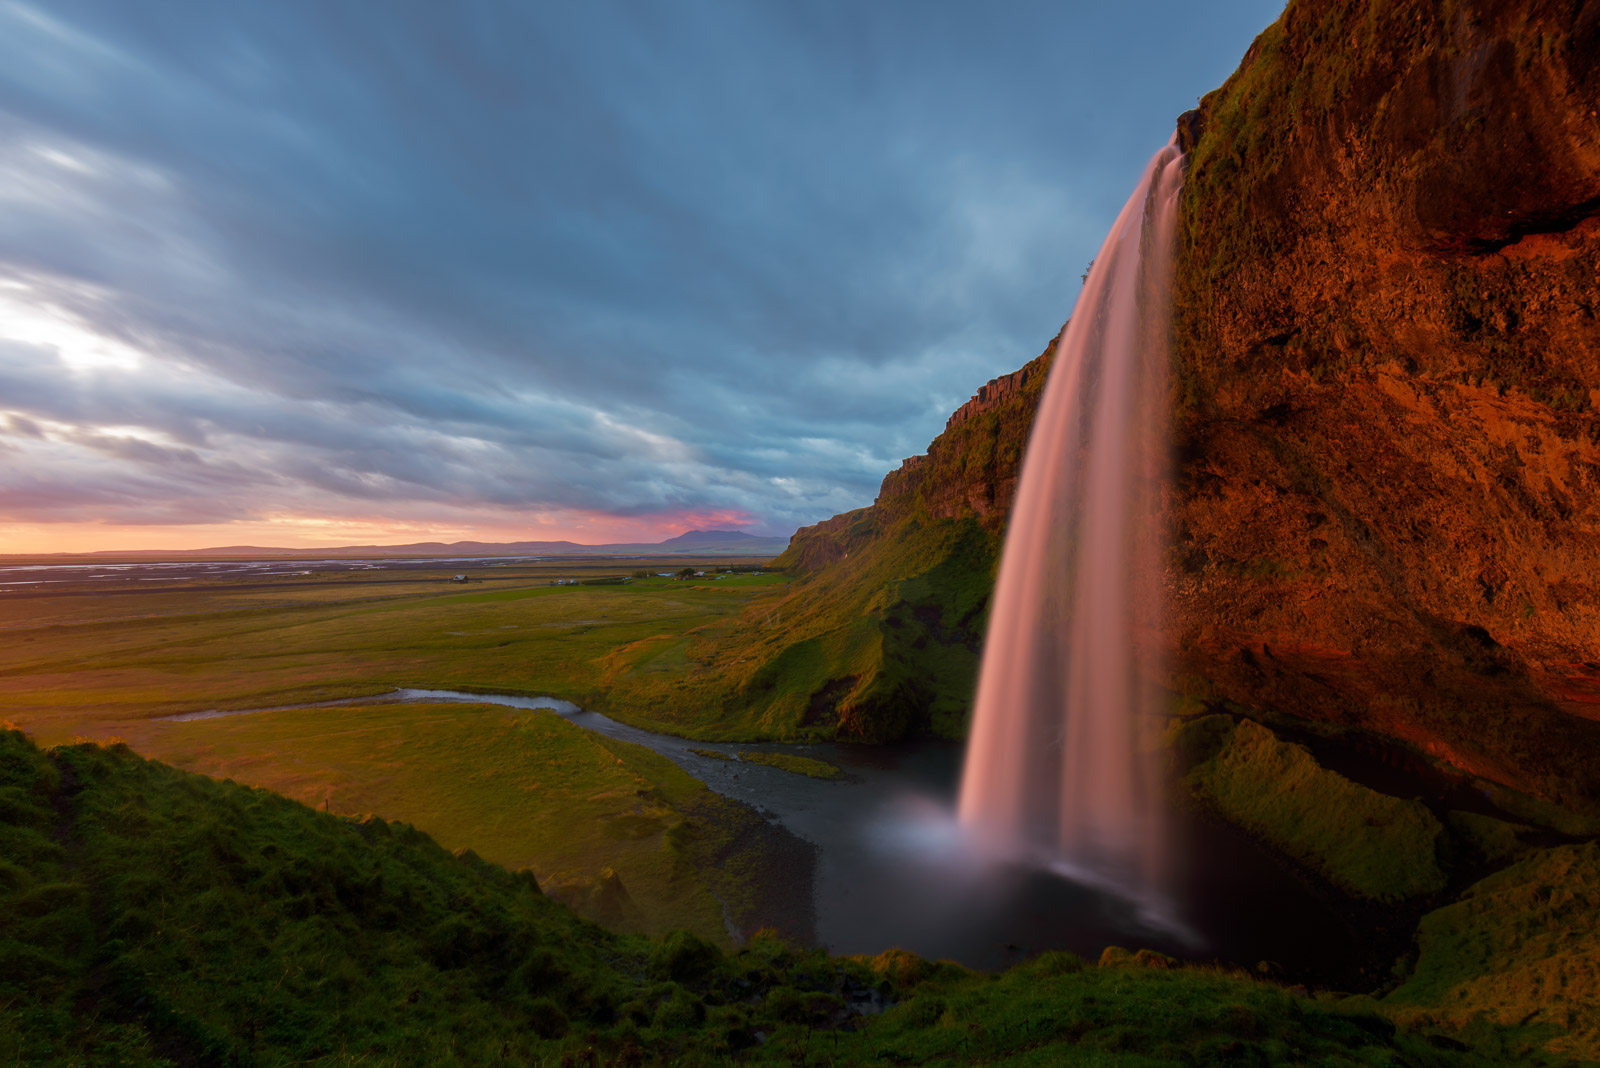 Seljalandfoss waterfall in Iceland captured at sunset in July. Available Print Sizes: 12x18, 16x24, 20x30, 24x36, 30x45, 40x60Limited...